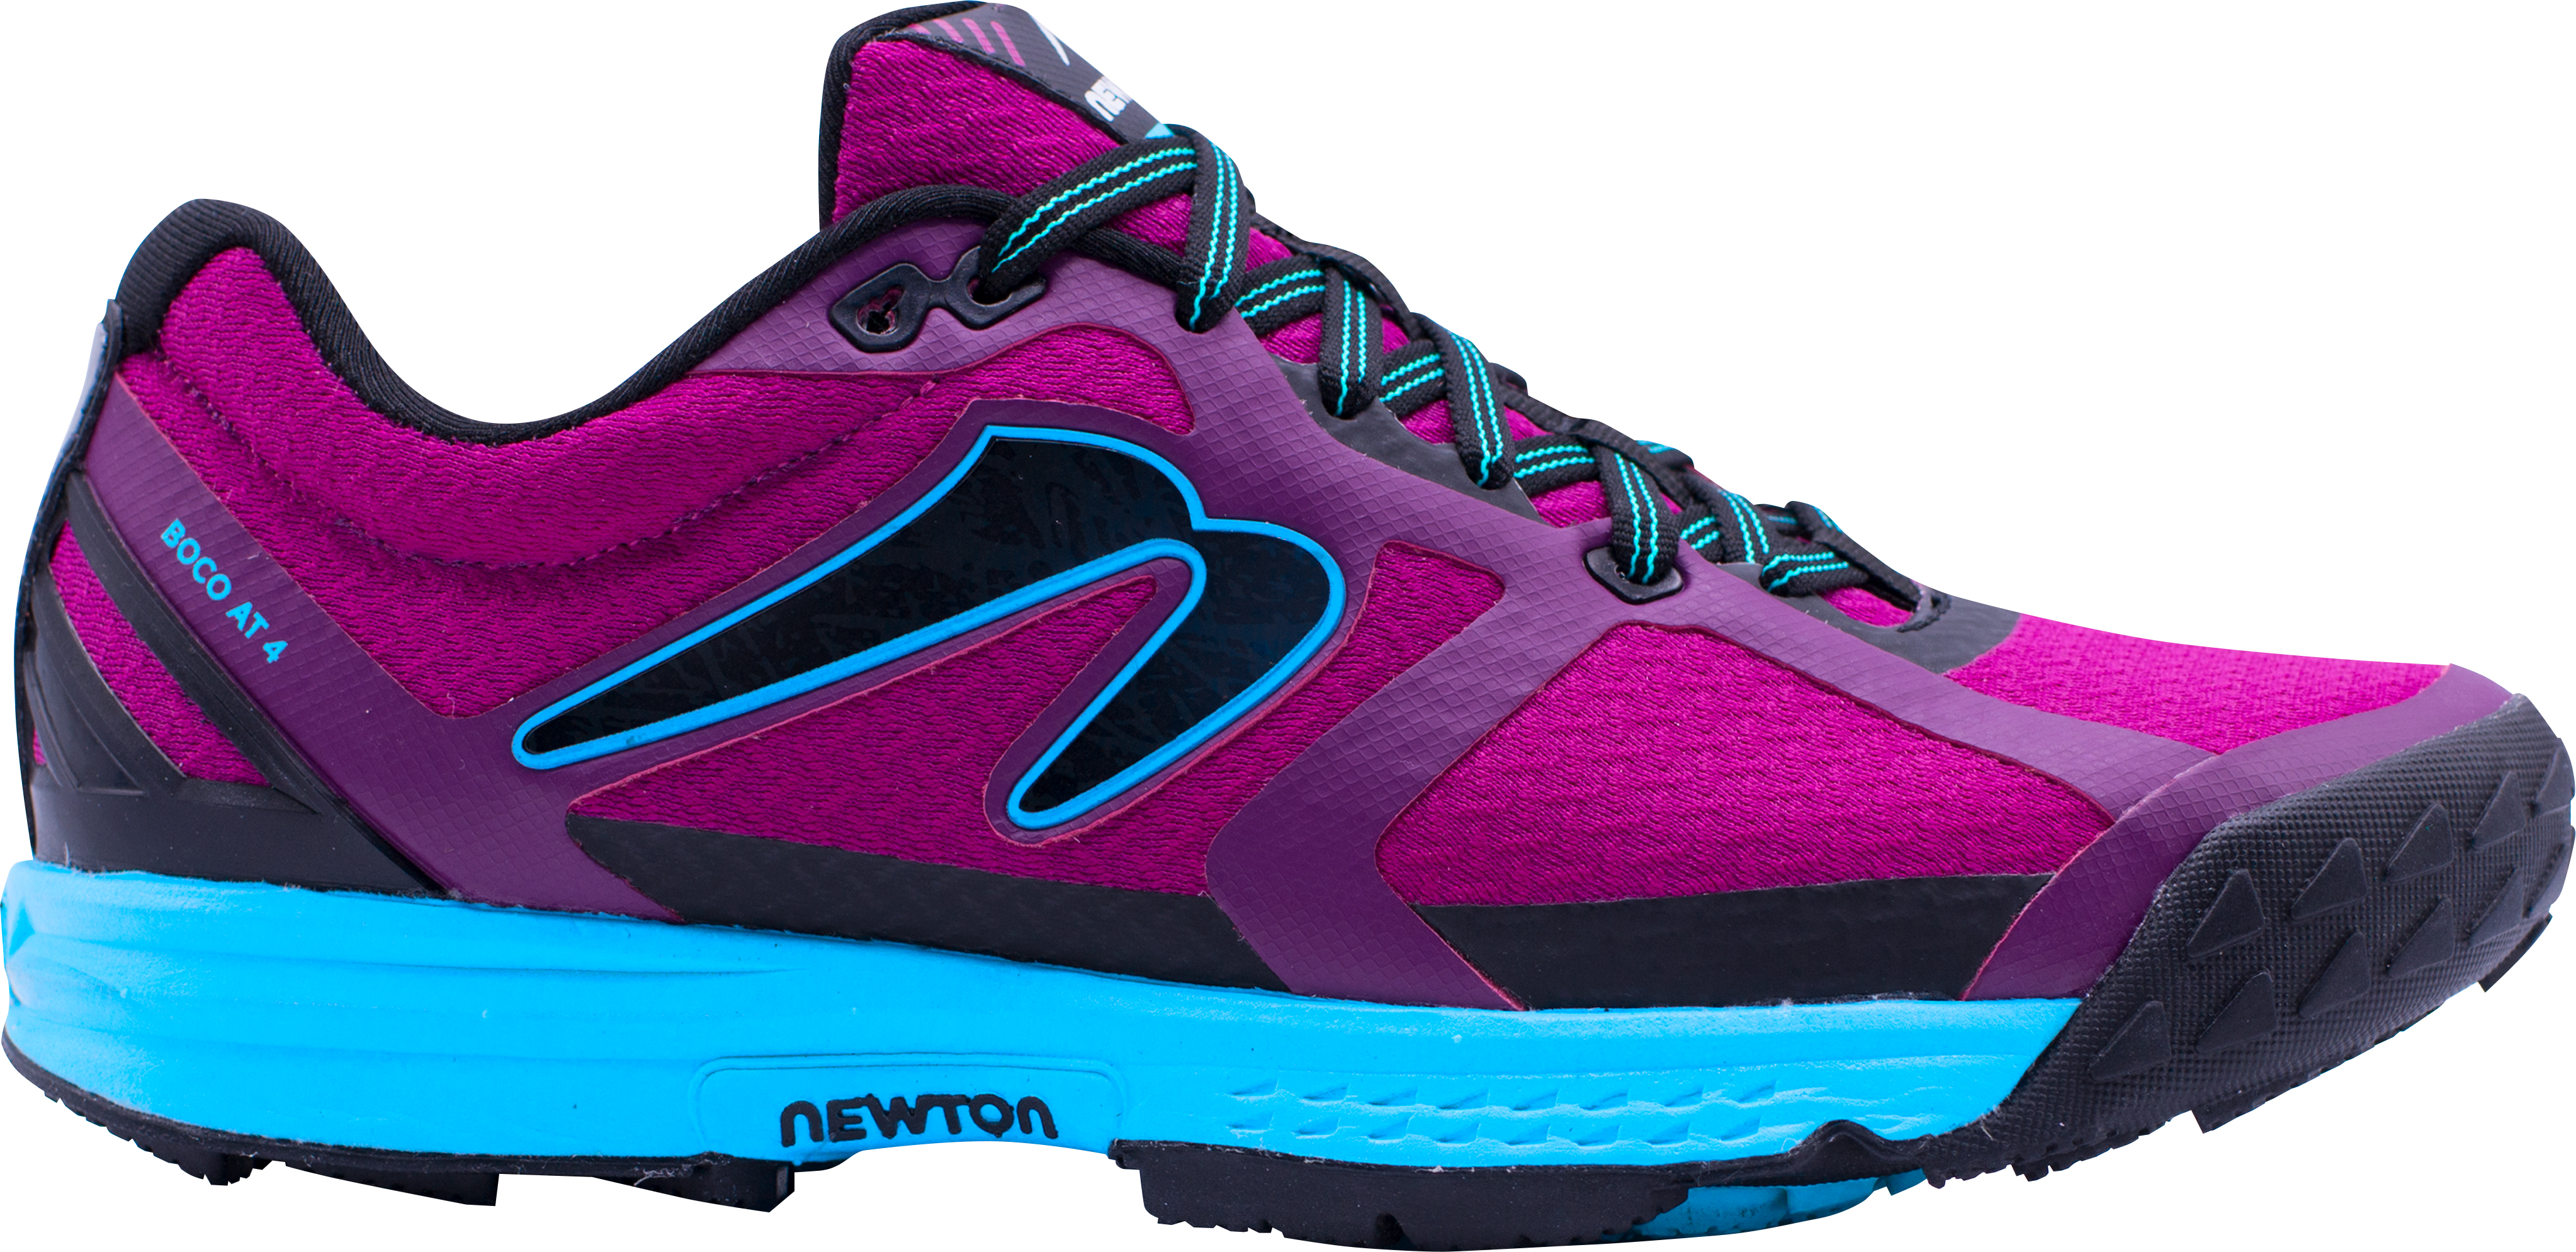 Newton Running Shoes Women's Boco AT 4 | Shoes